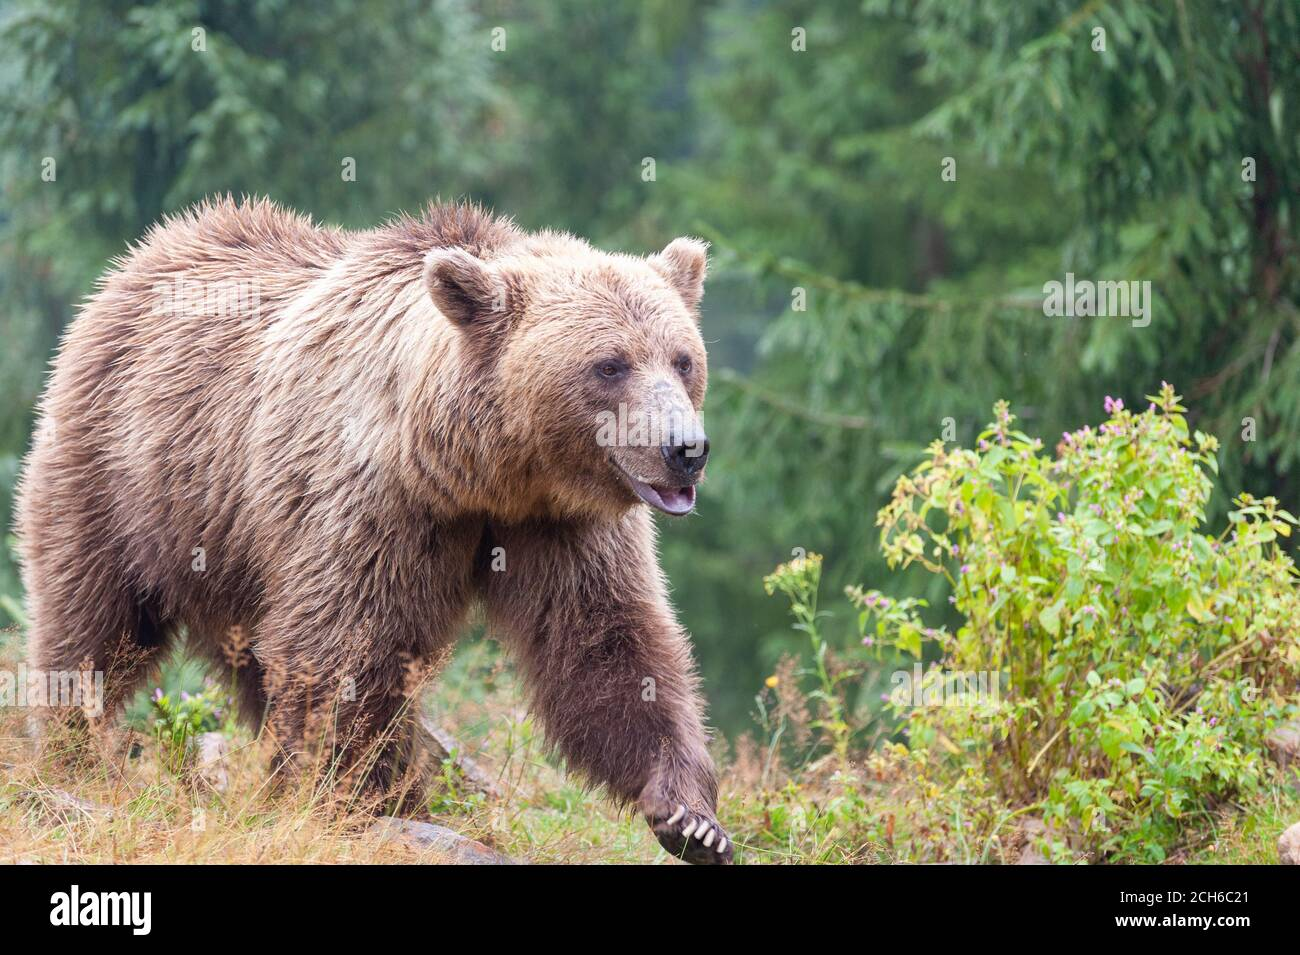 Brown bear (Latin Ursus Arctos) in the forest on a background of wildlife. Stock Photo